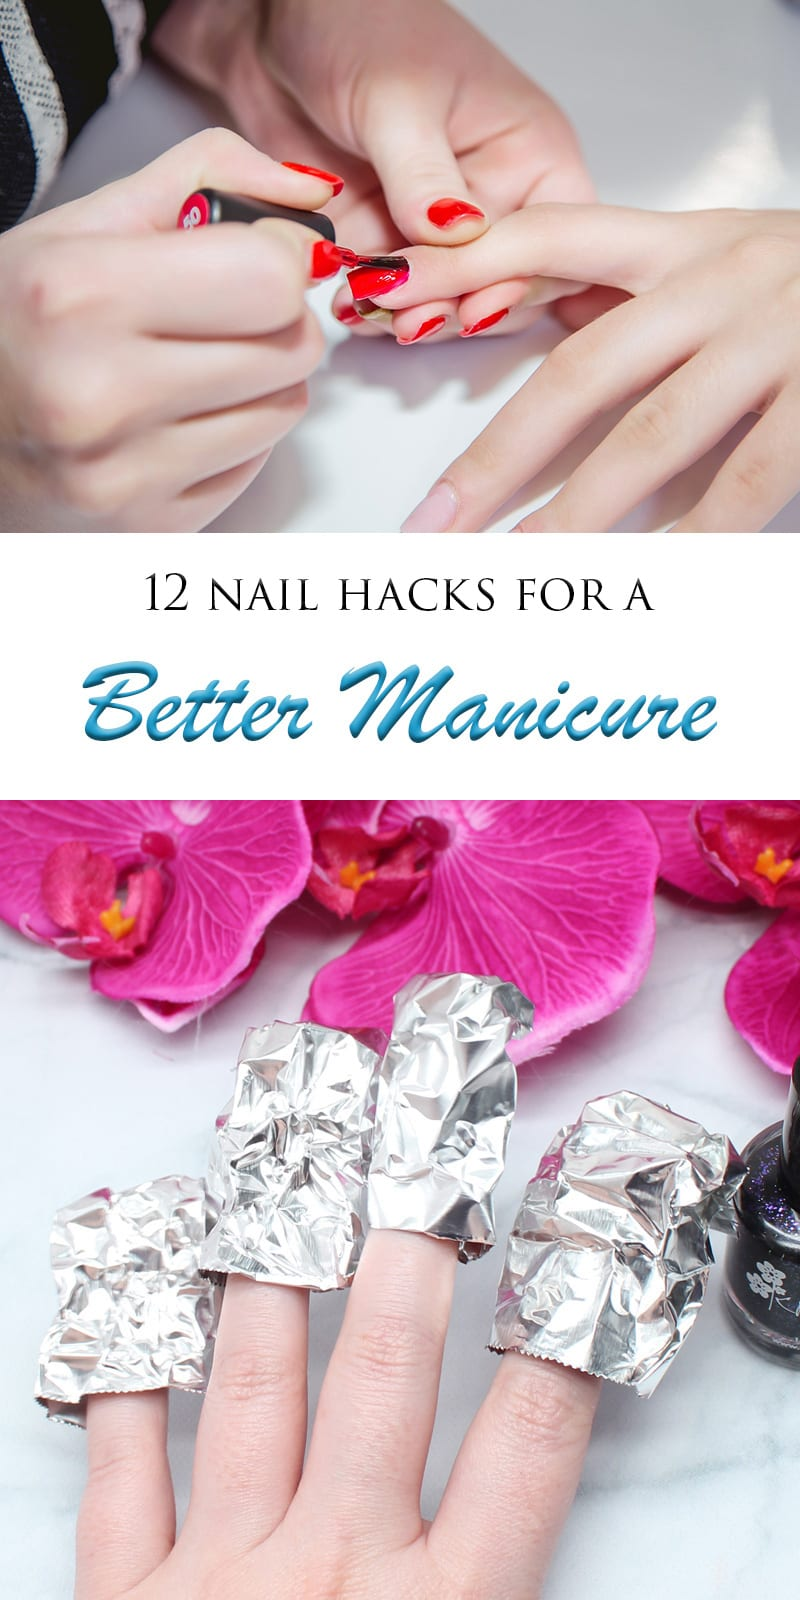 Nail Hacks for a Better Manicure